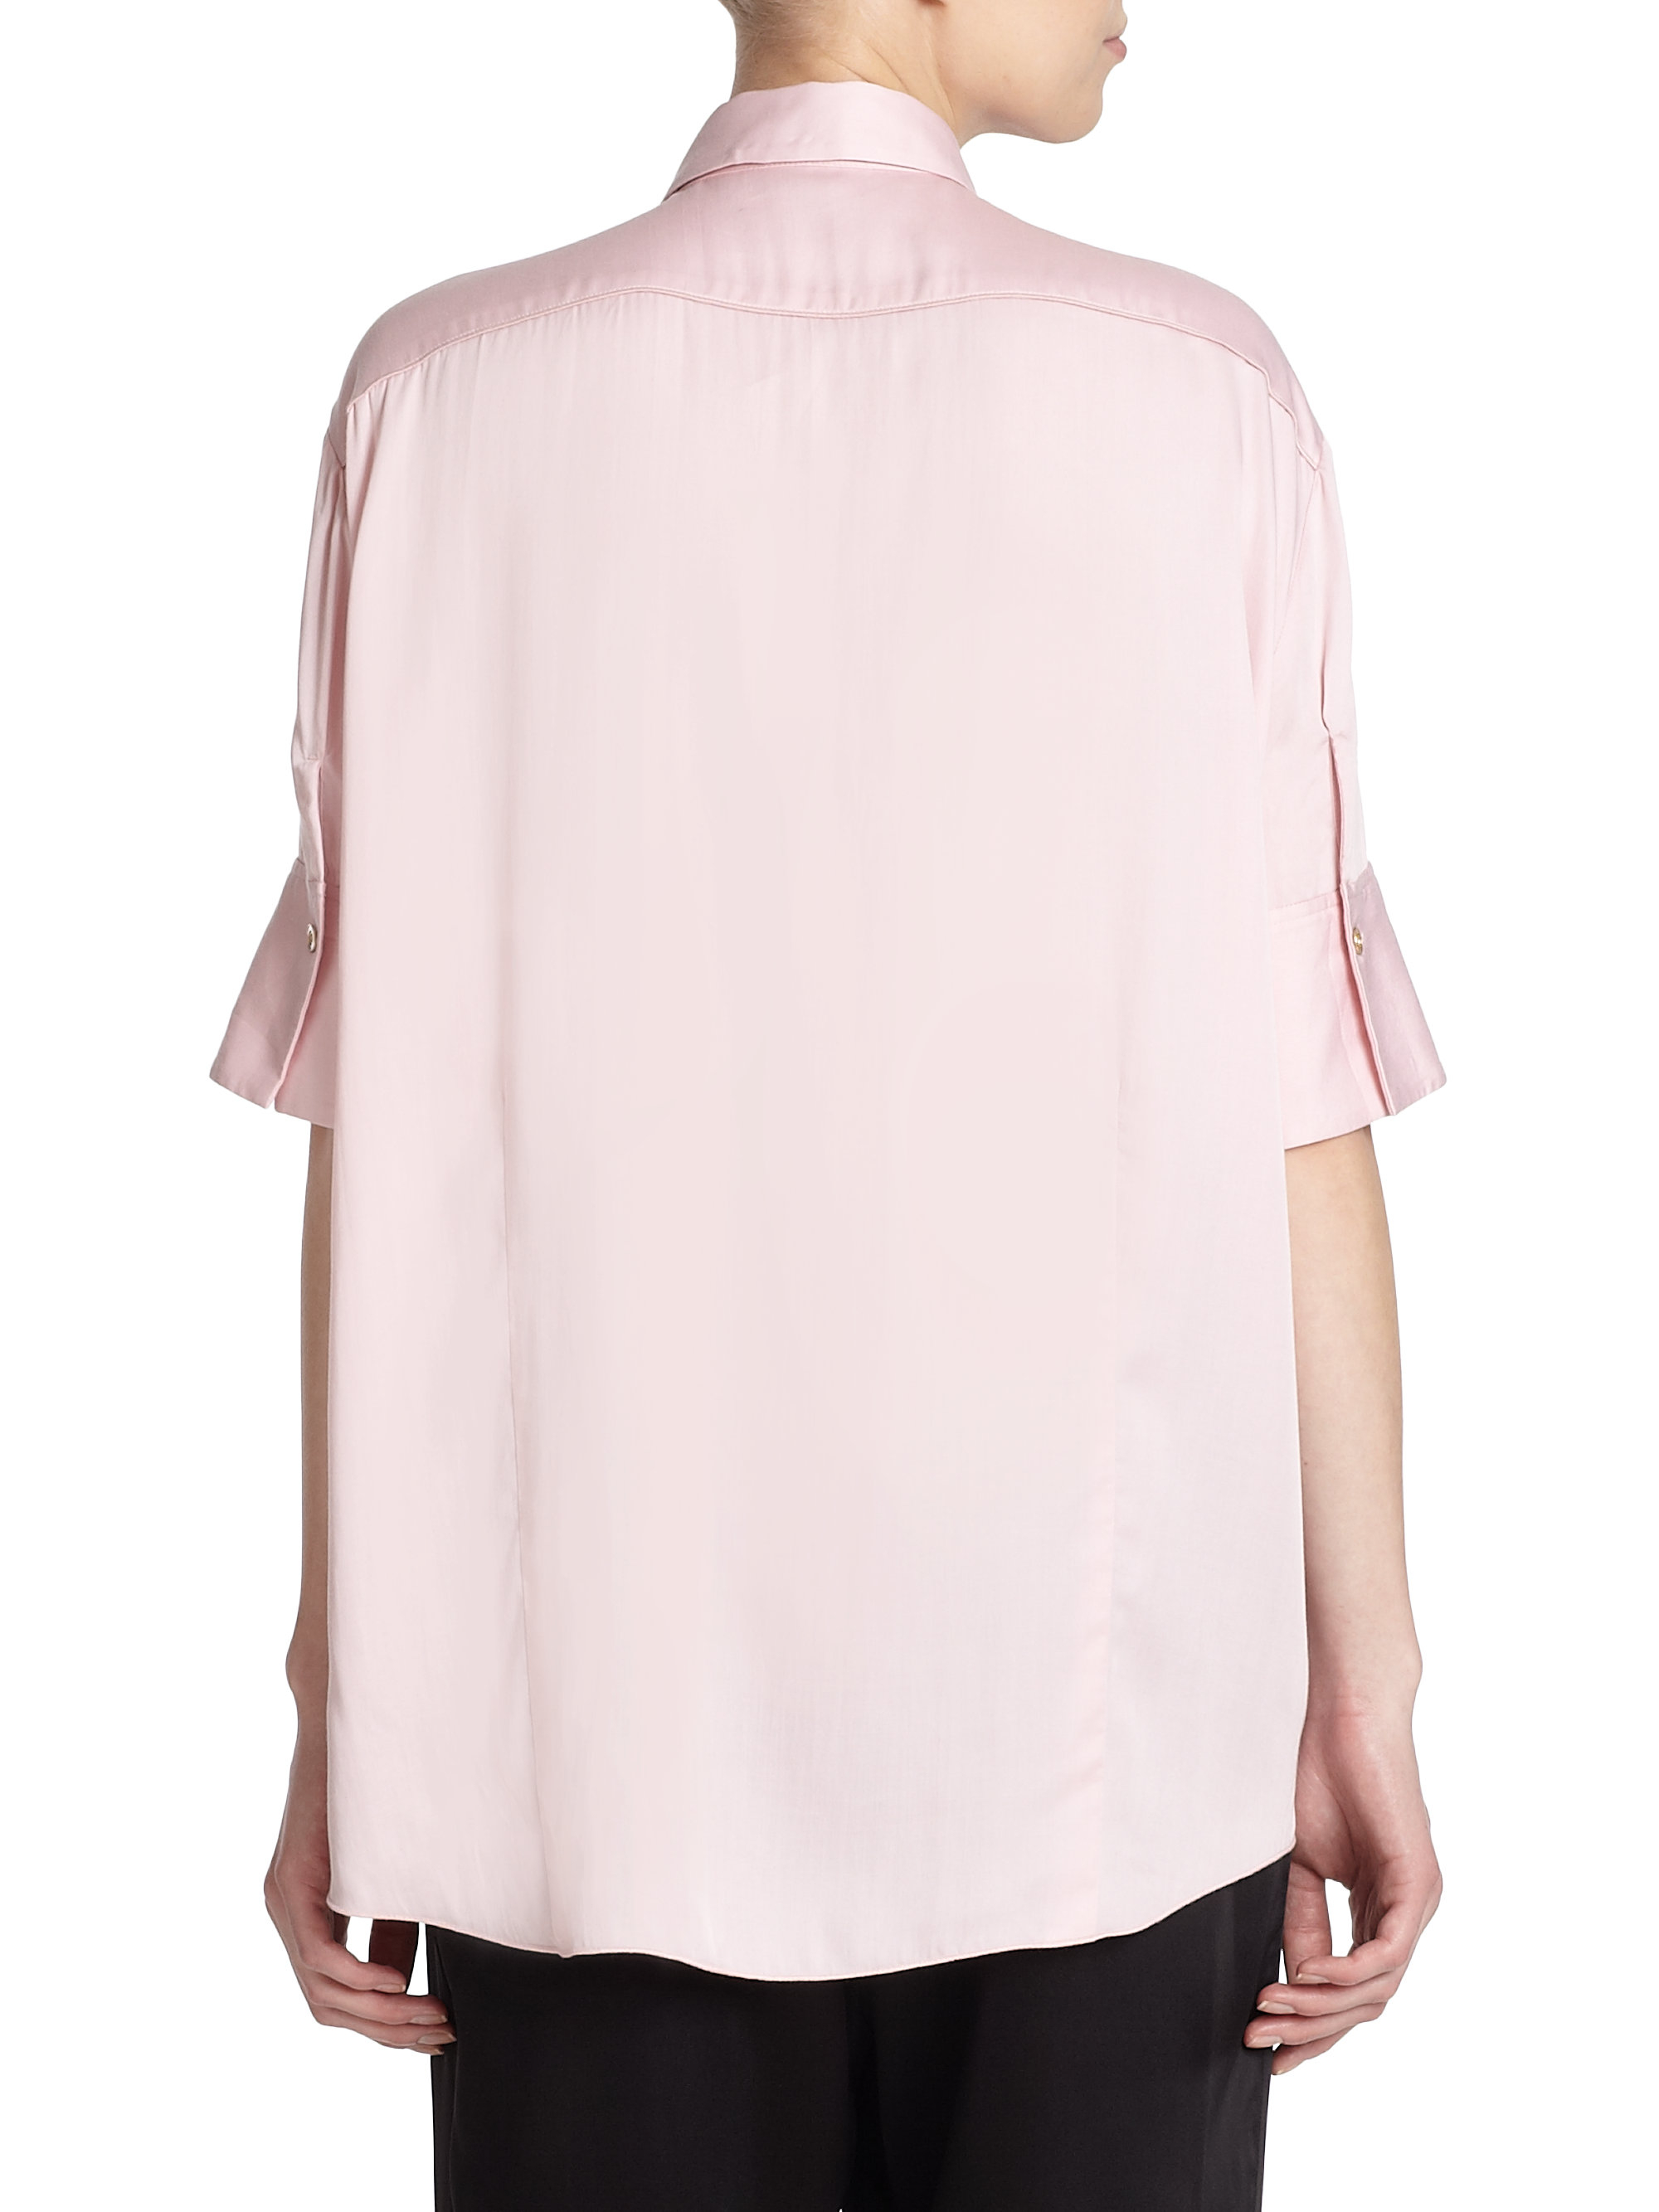 Acne Studios Addle Fluid Button Down Shirt In Pink Lyst